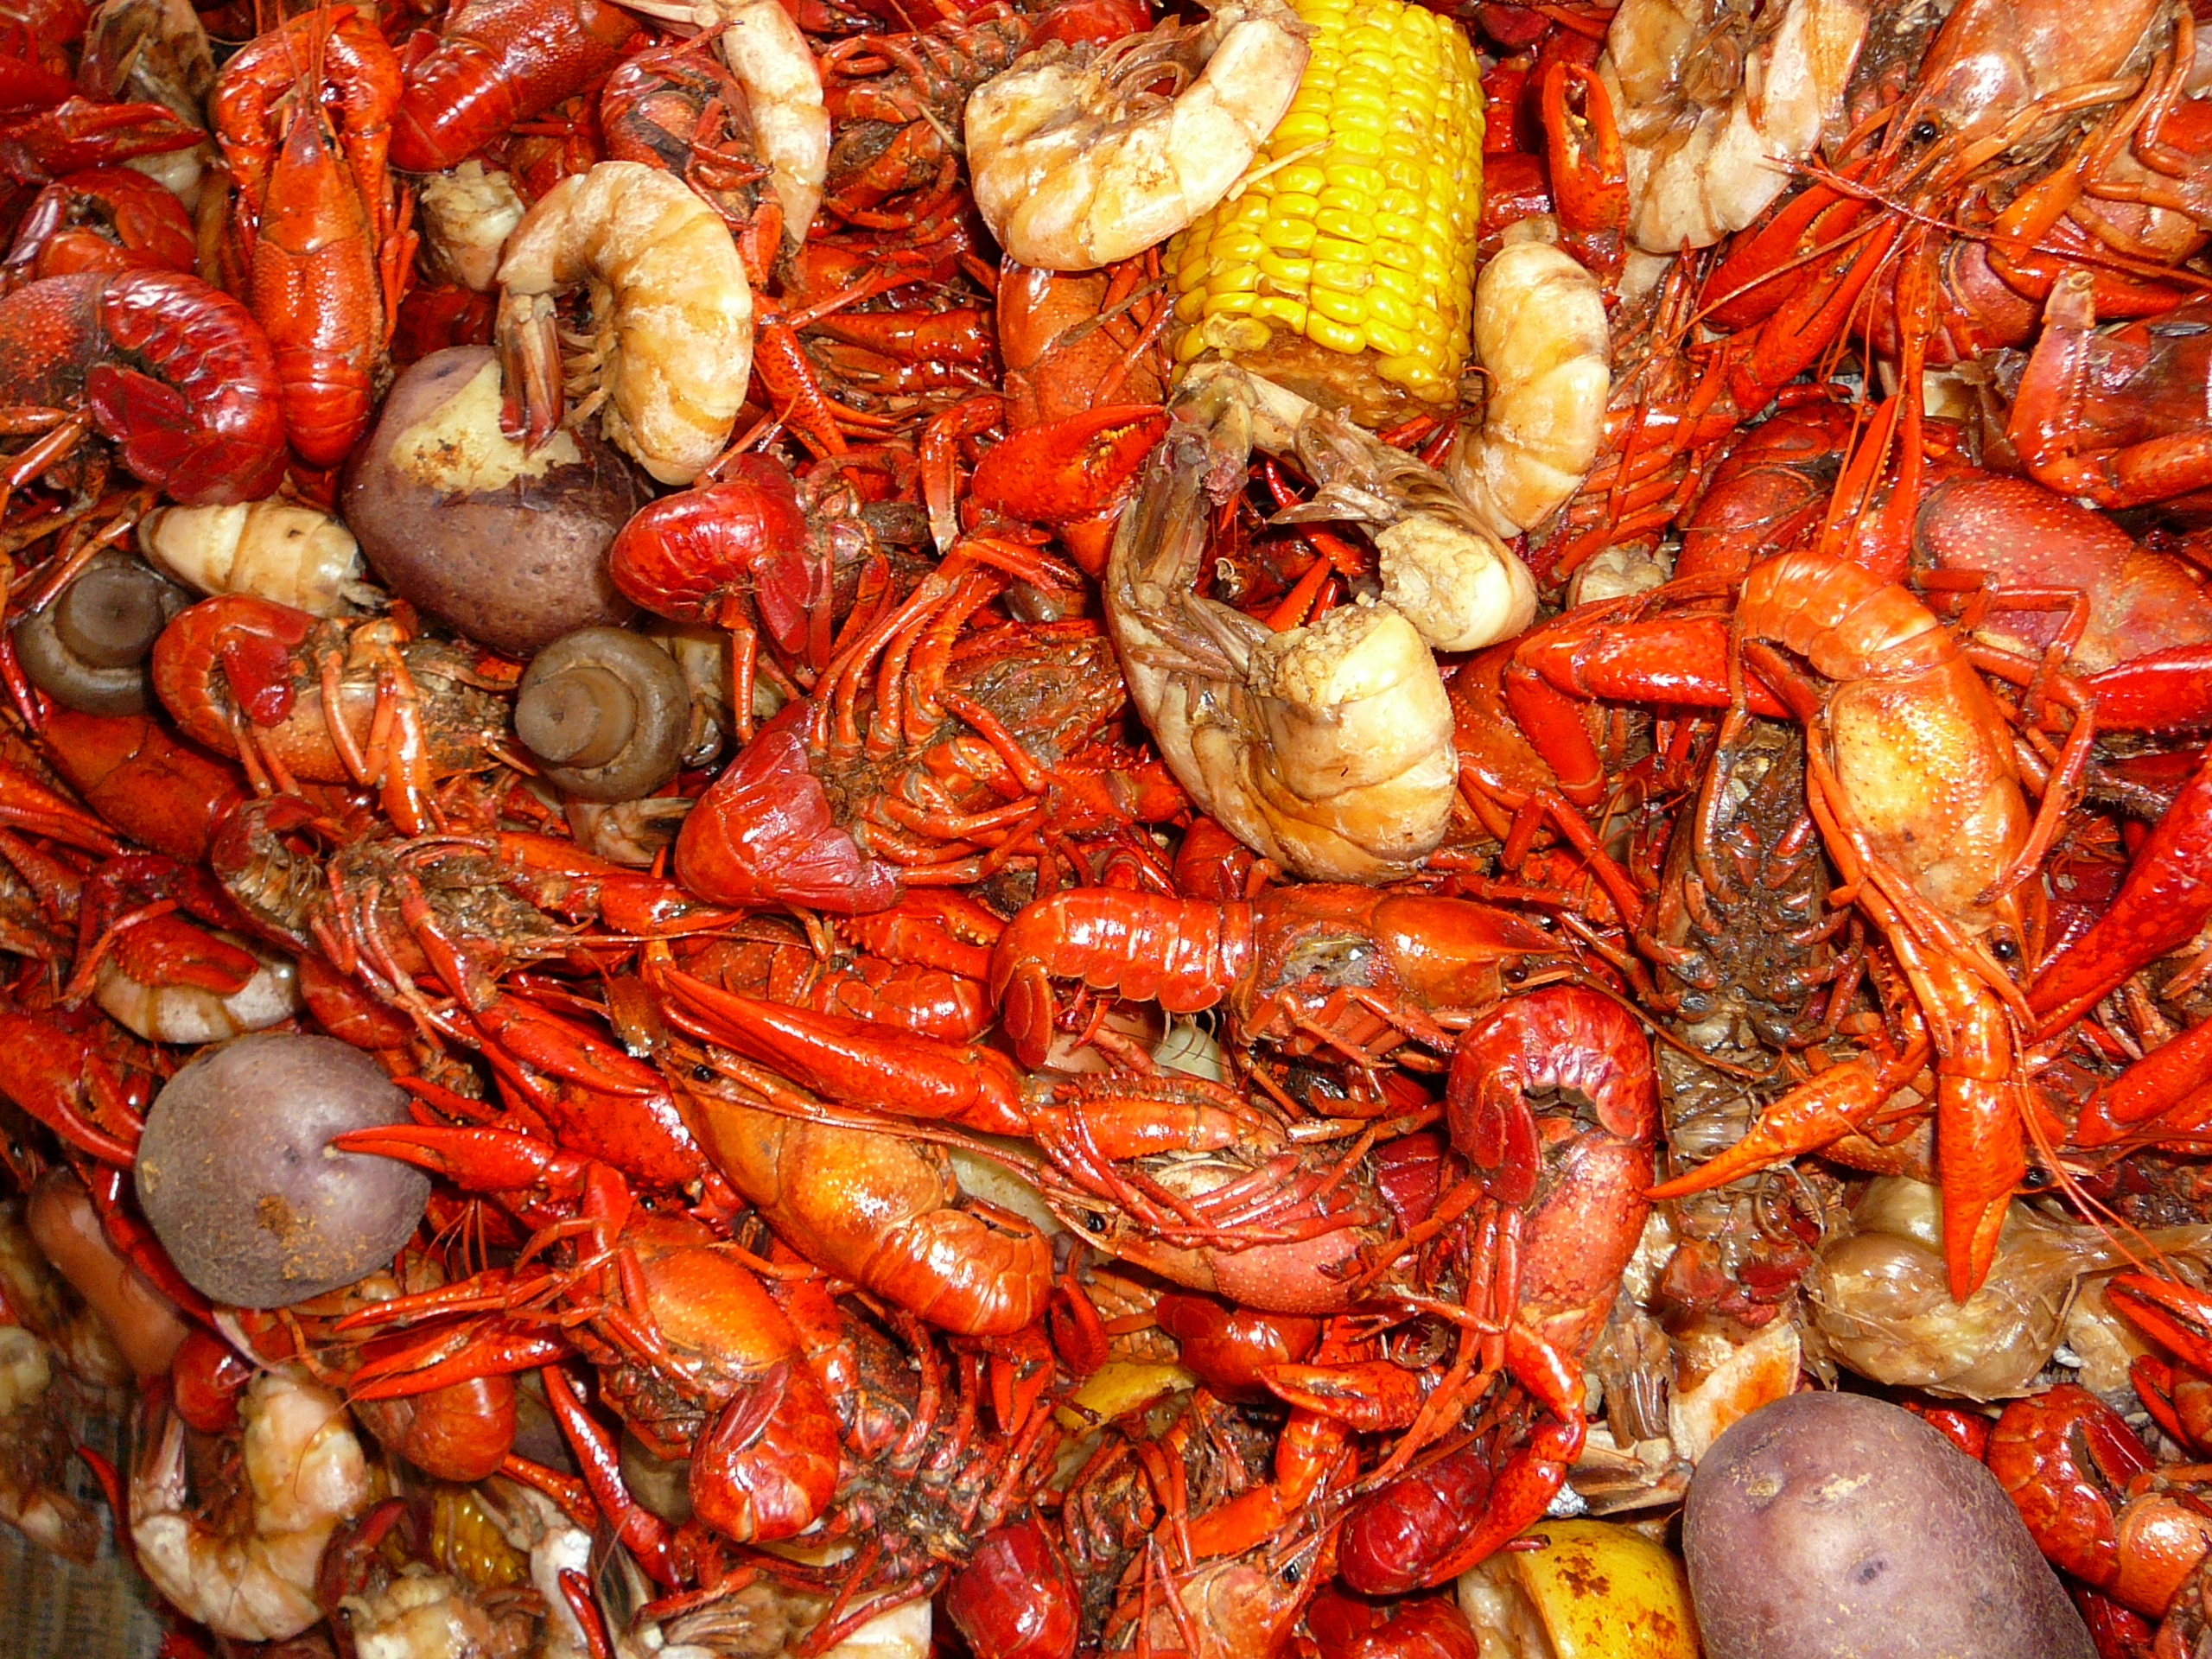 ... crawfish season and the weather is picture perfect for a boil in the